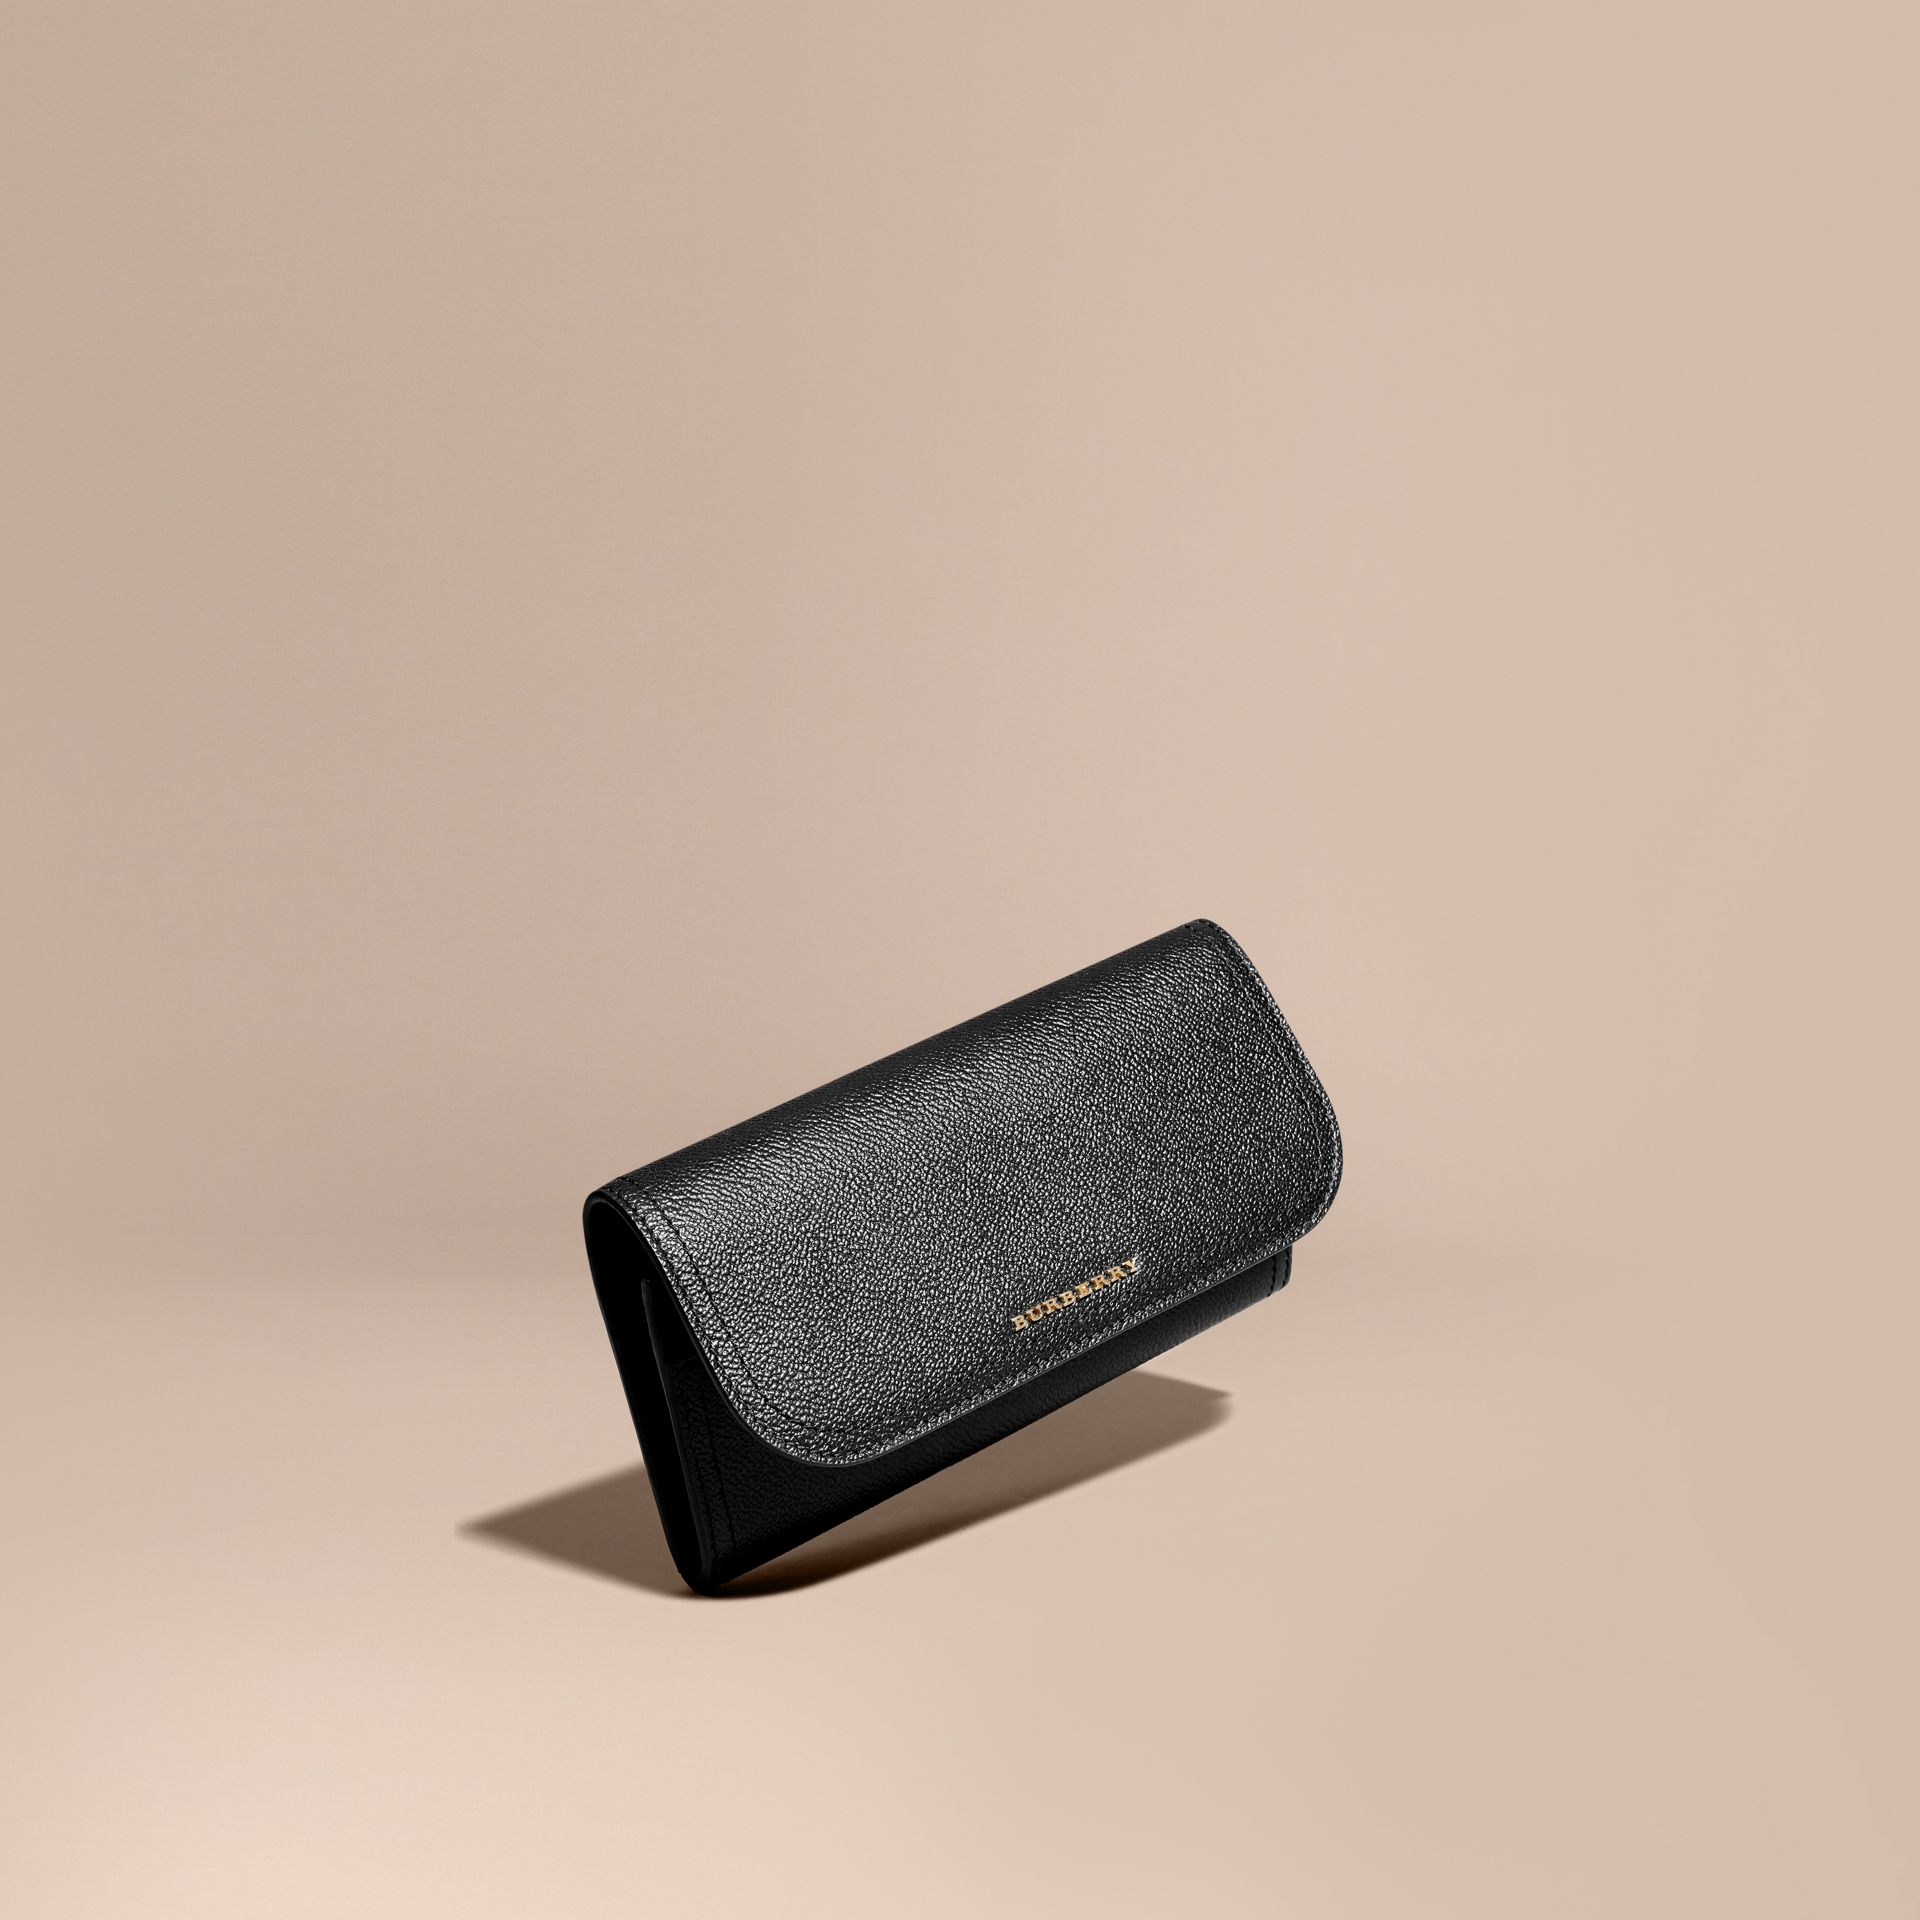 Grainy Leather Slim Continental Wallet in Black - Women | Burberry Australia - gallery image 1